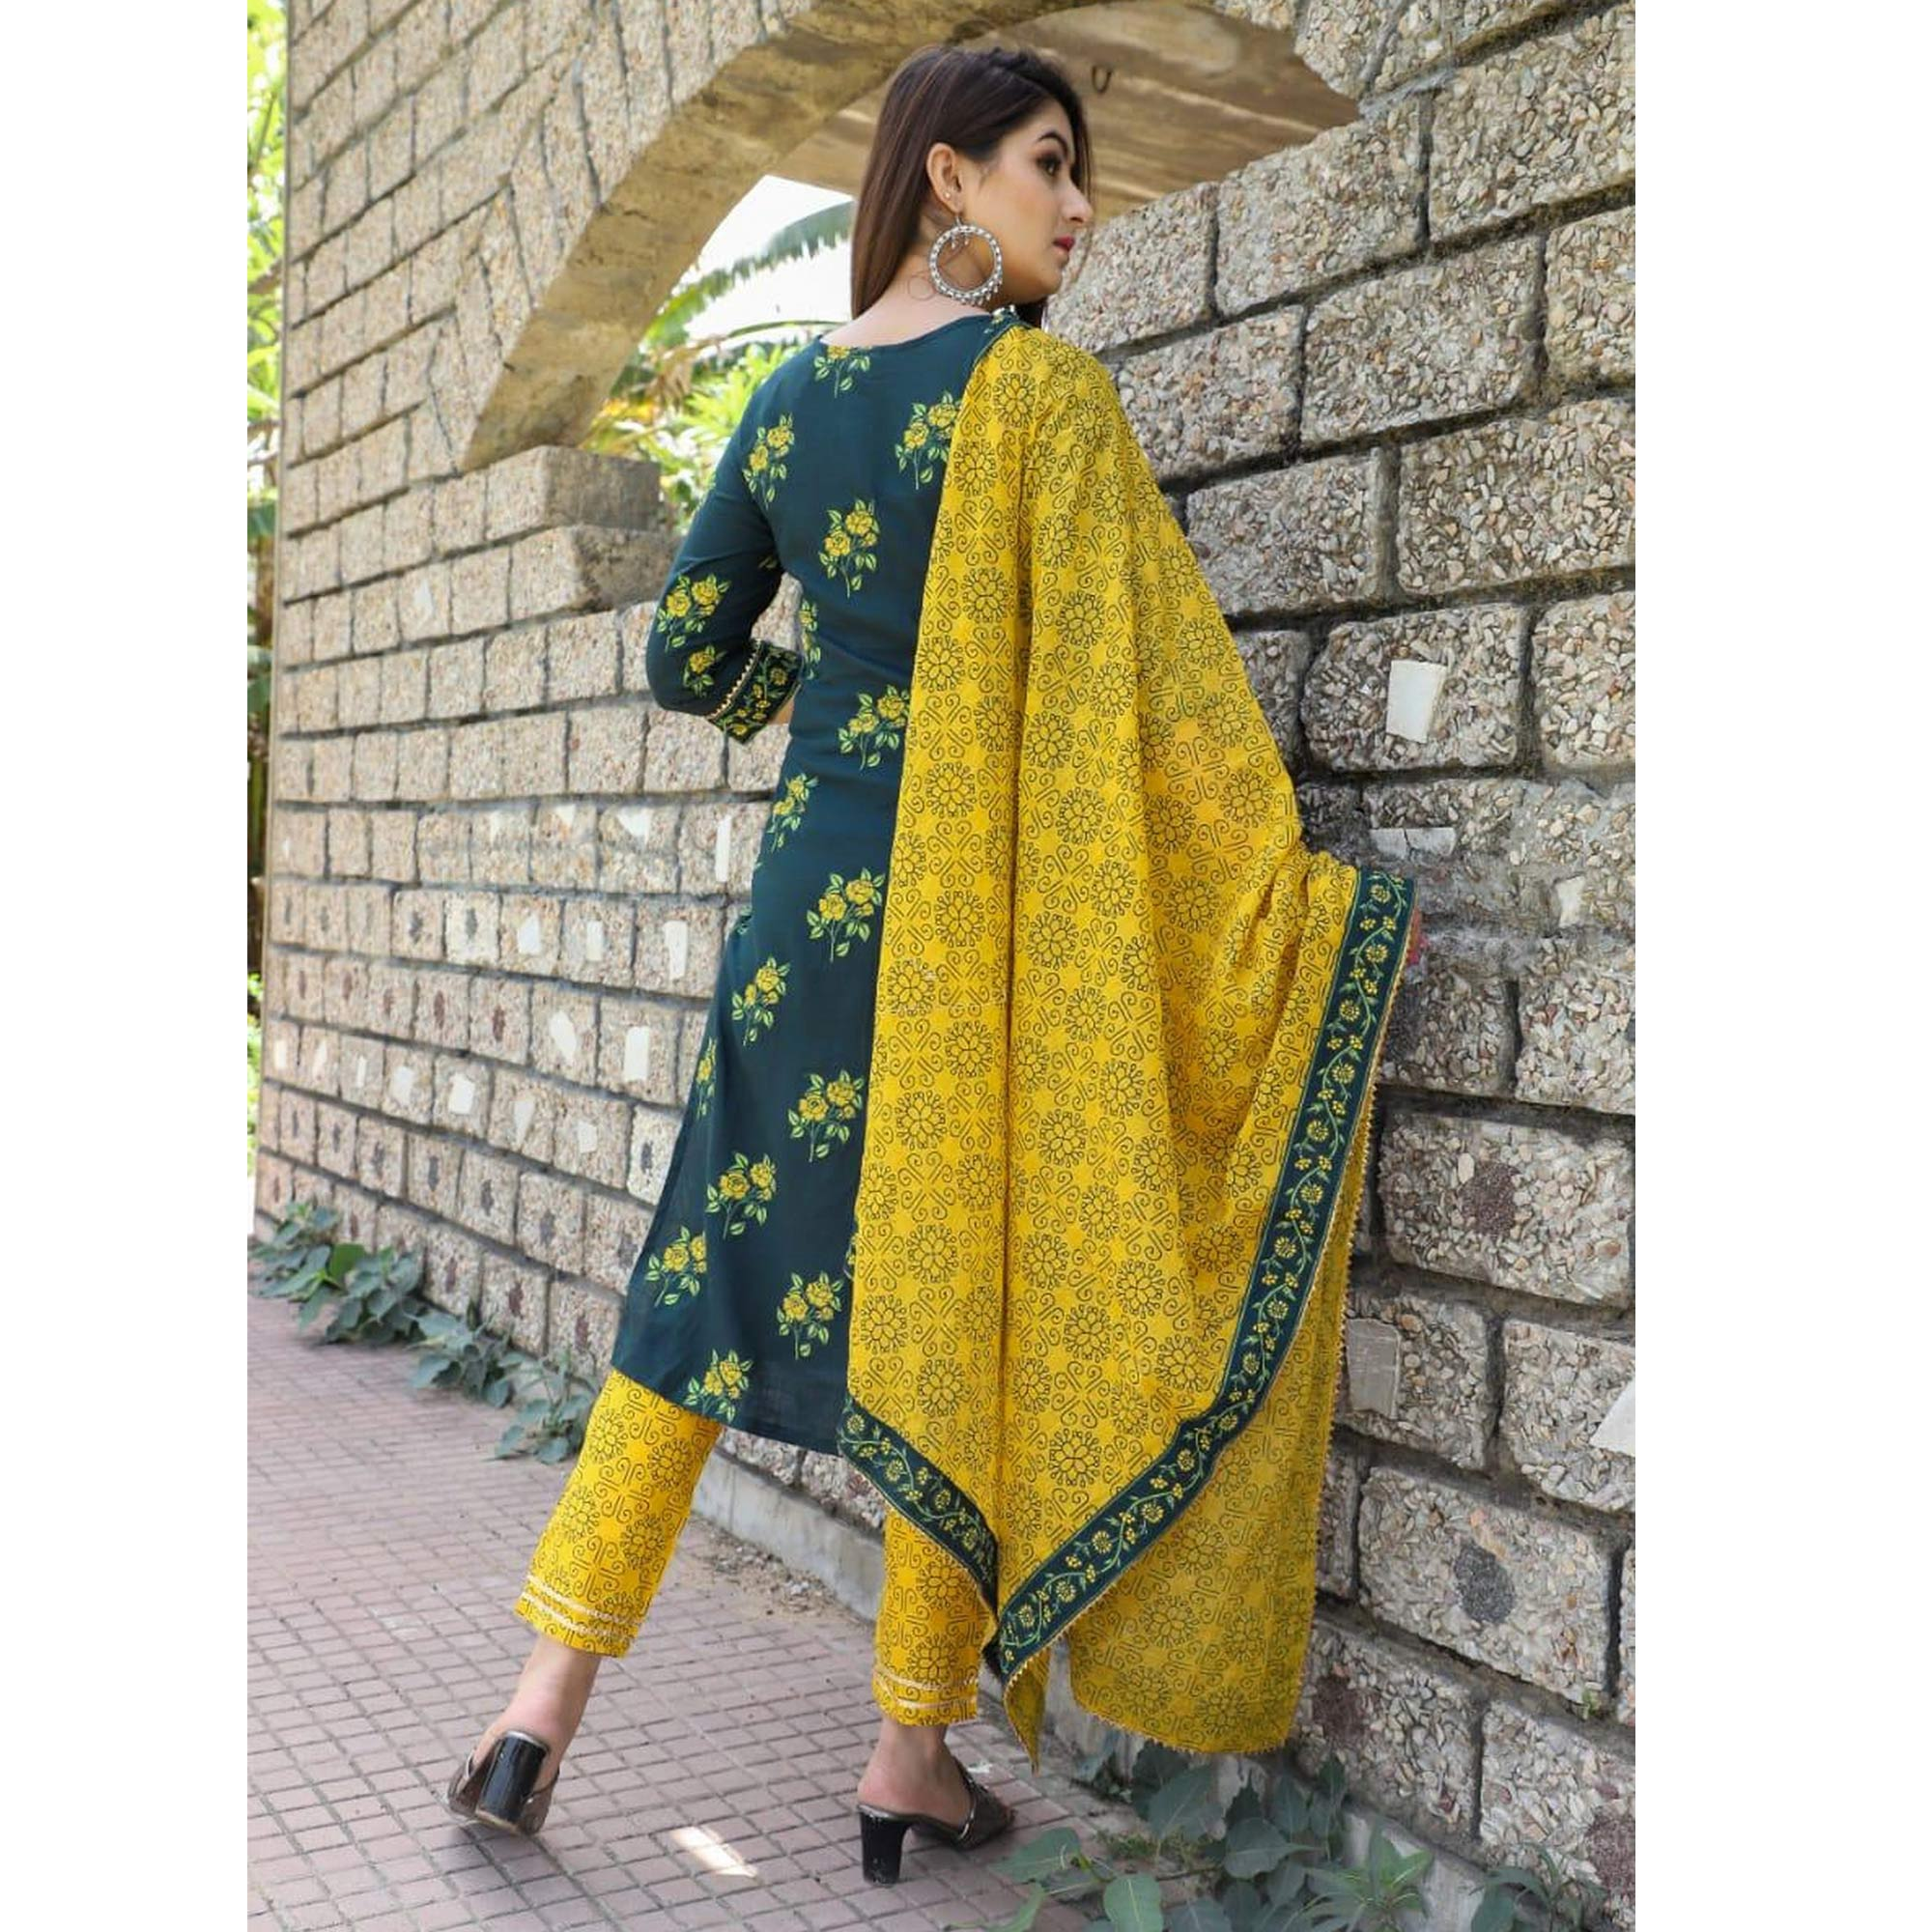 SHIVOM CREATION - Fabulous Design Green Colored Rayon Kurti Pant Set With Dupatta